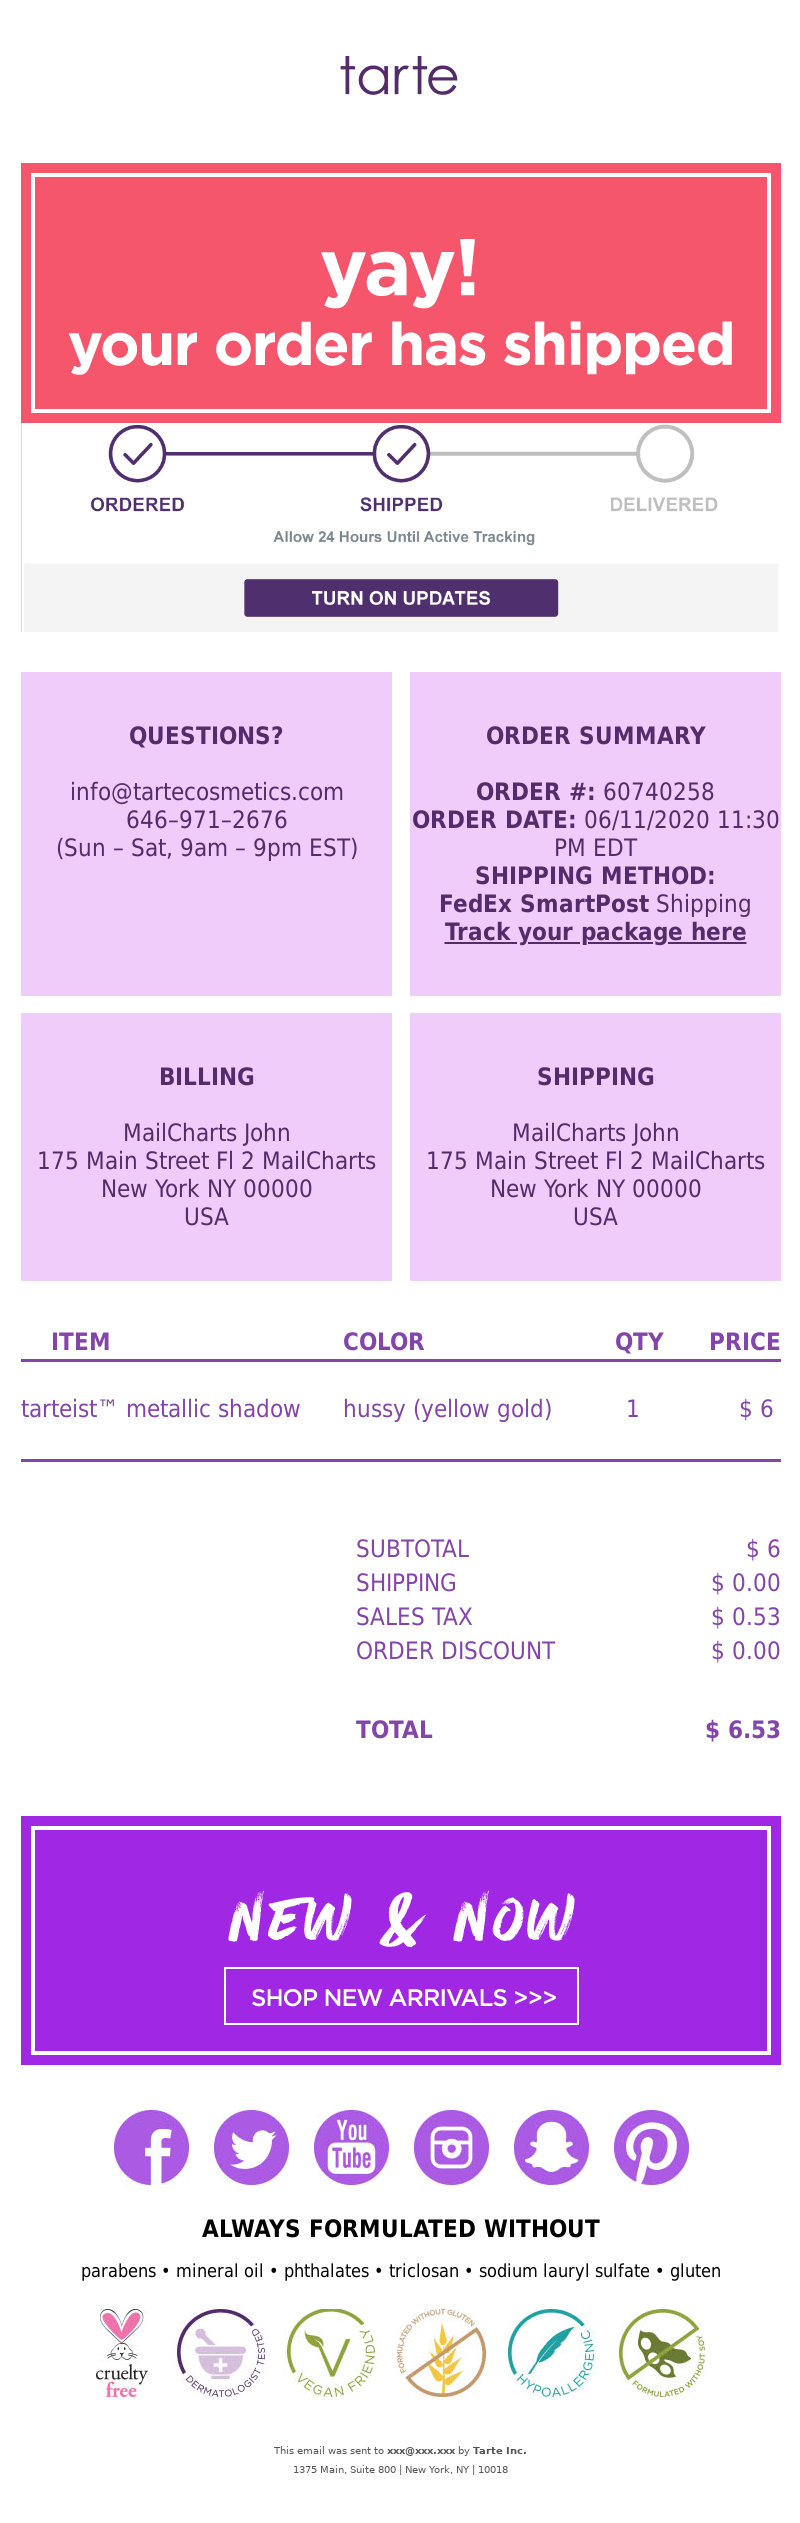 Shipping confirmation email template from tarte